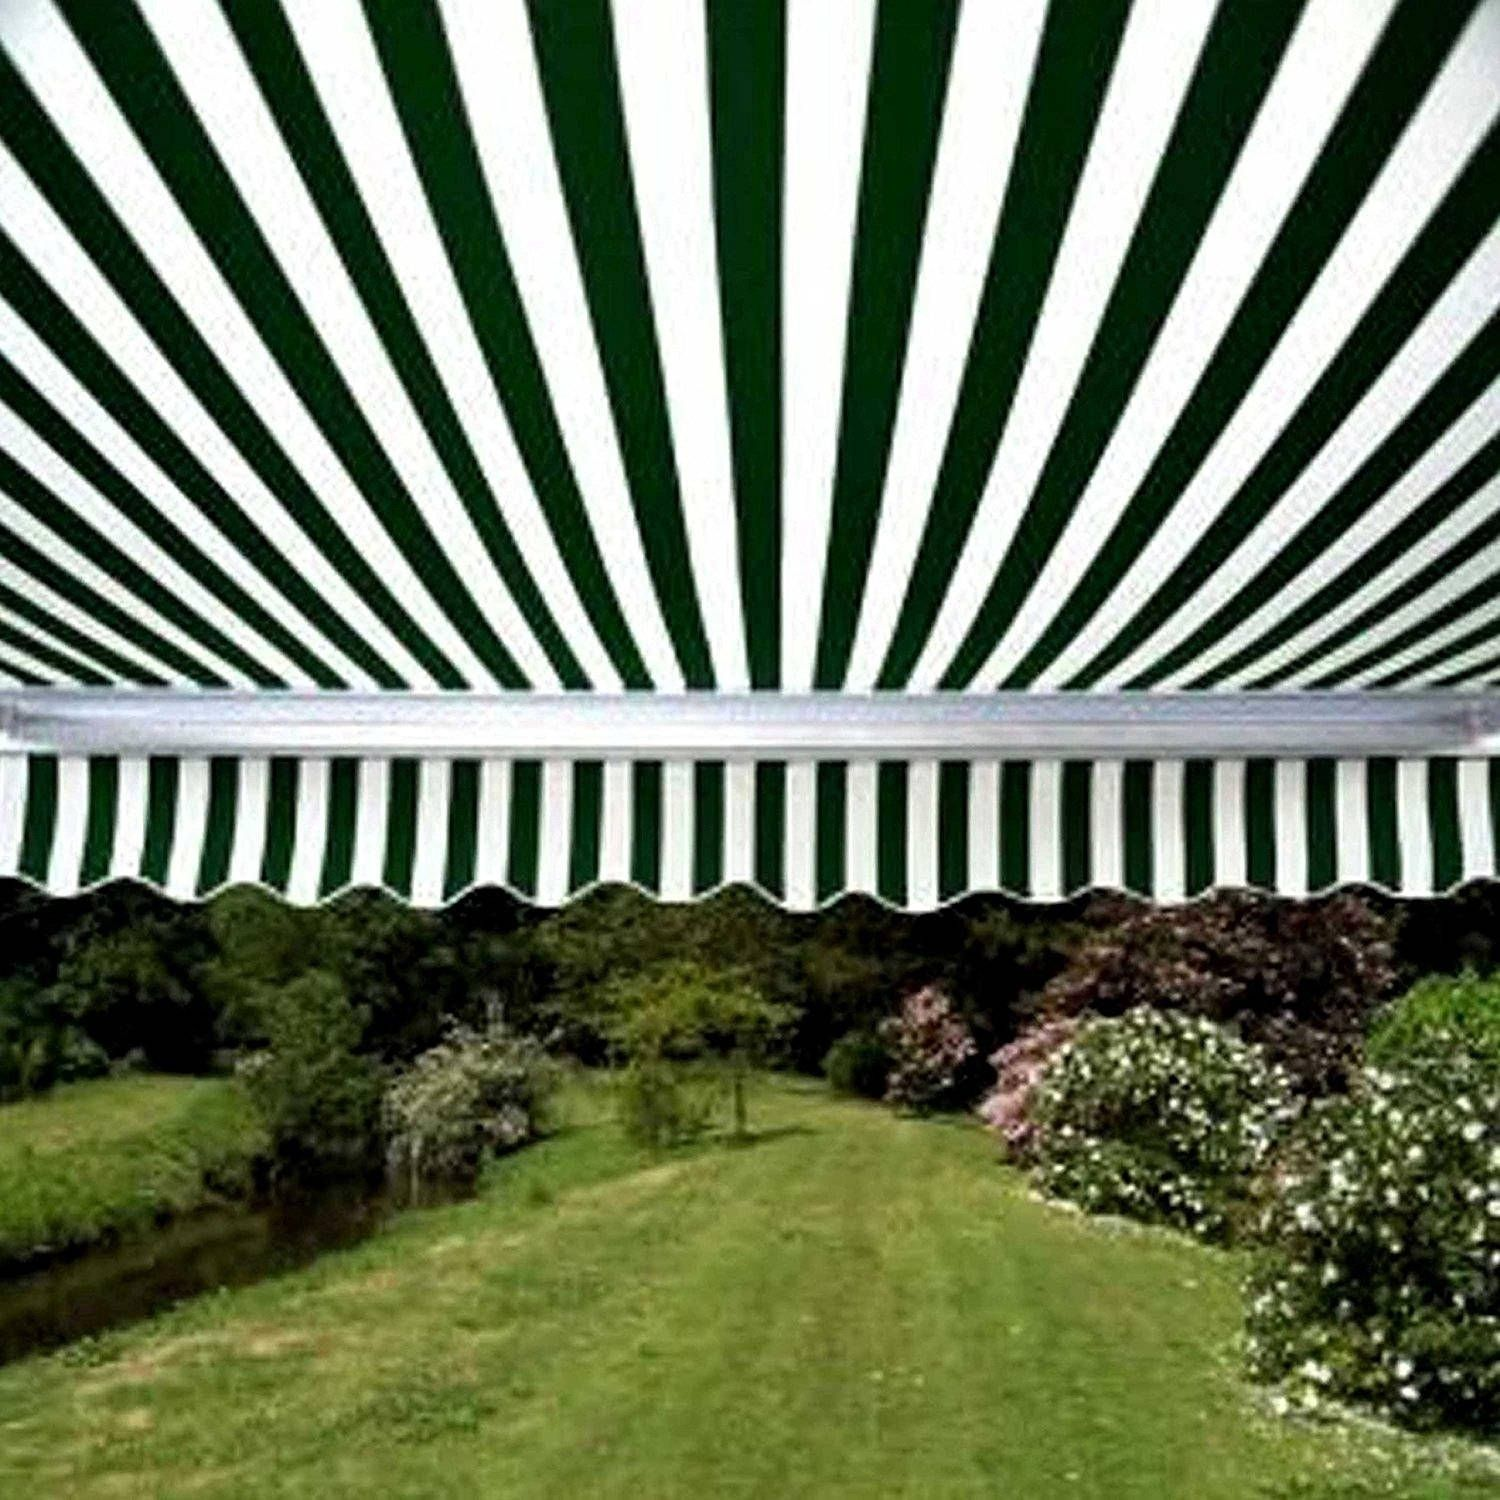 Aleko Motorized 20x10 Ft Retractable Outdoor Patio Awning Sunshade Green White Retractable Awning Outdoor Patio